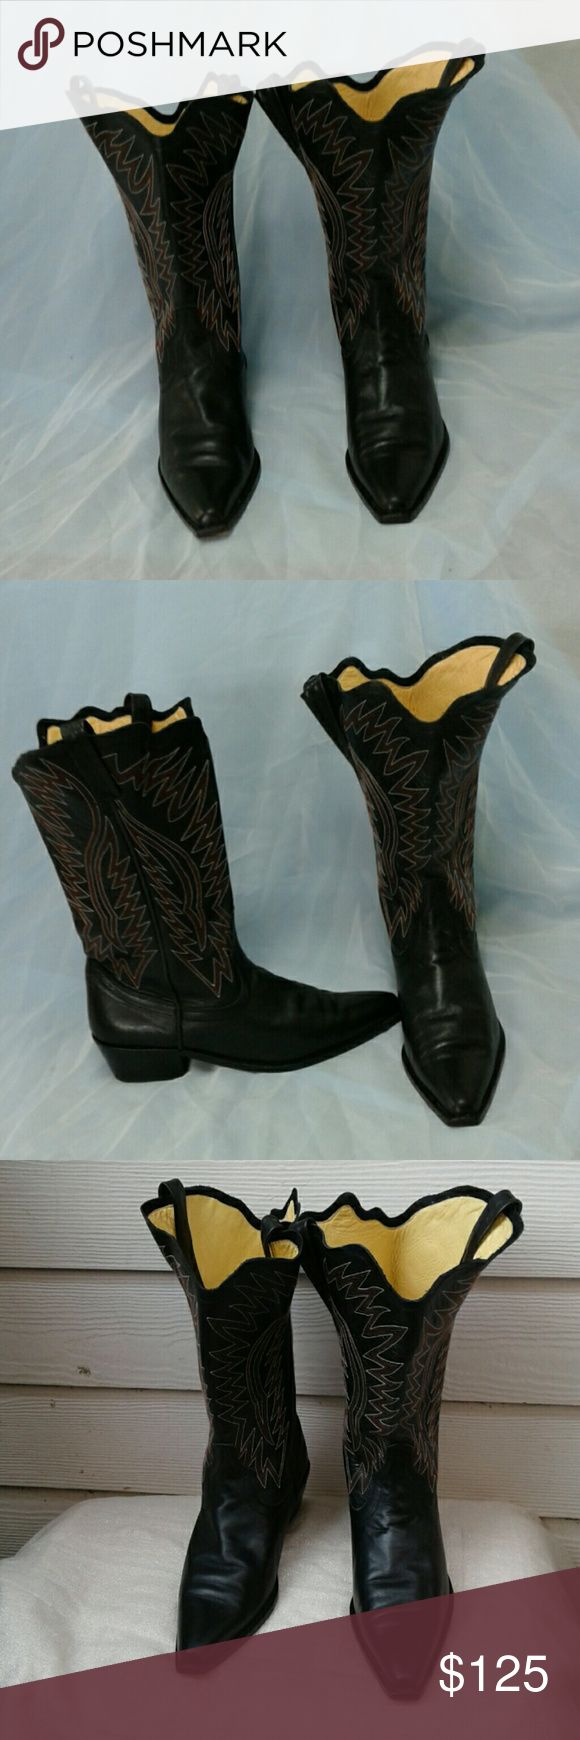 """UNDERCOVER CO., LTD by JUN TAKAHASHI COWGIRL BOOTS THESE """"RARE"""" UNDERCOVER., LTD, COWGIRL BOOTS  by JUN  TAKAHASHI SPORT A UNIQUE SCALLOPED SHAFT,  DETAILED EMBROIDERED MOTIF,  ALL LEATHER SOLE, LINING AND UPPER, UNDERCOVER CO., LTD JUN TAKAHASHI  Shoes Heeled Boots"""